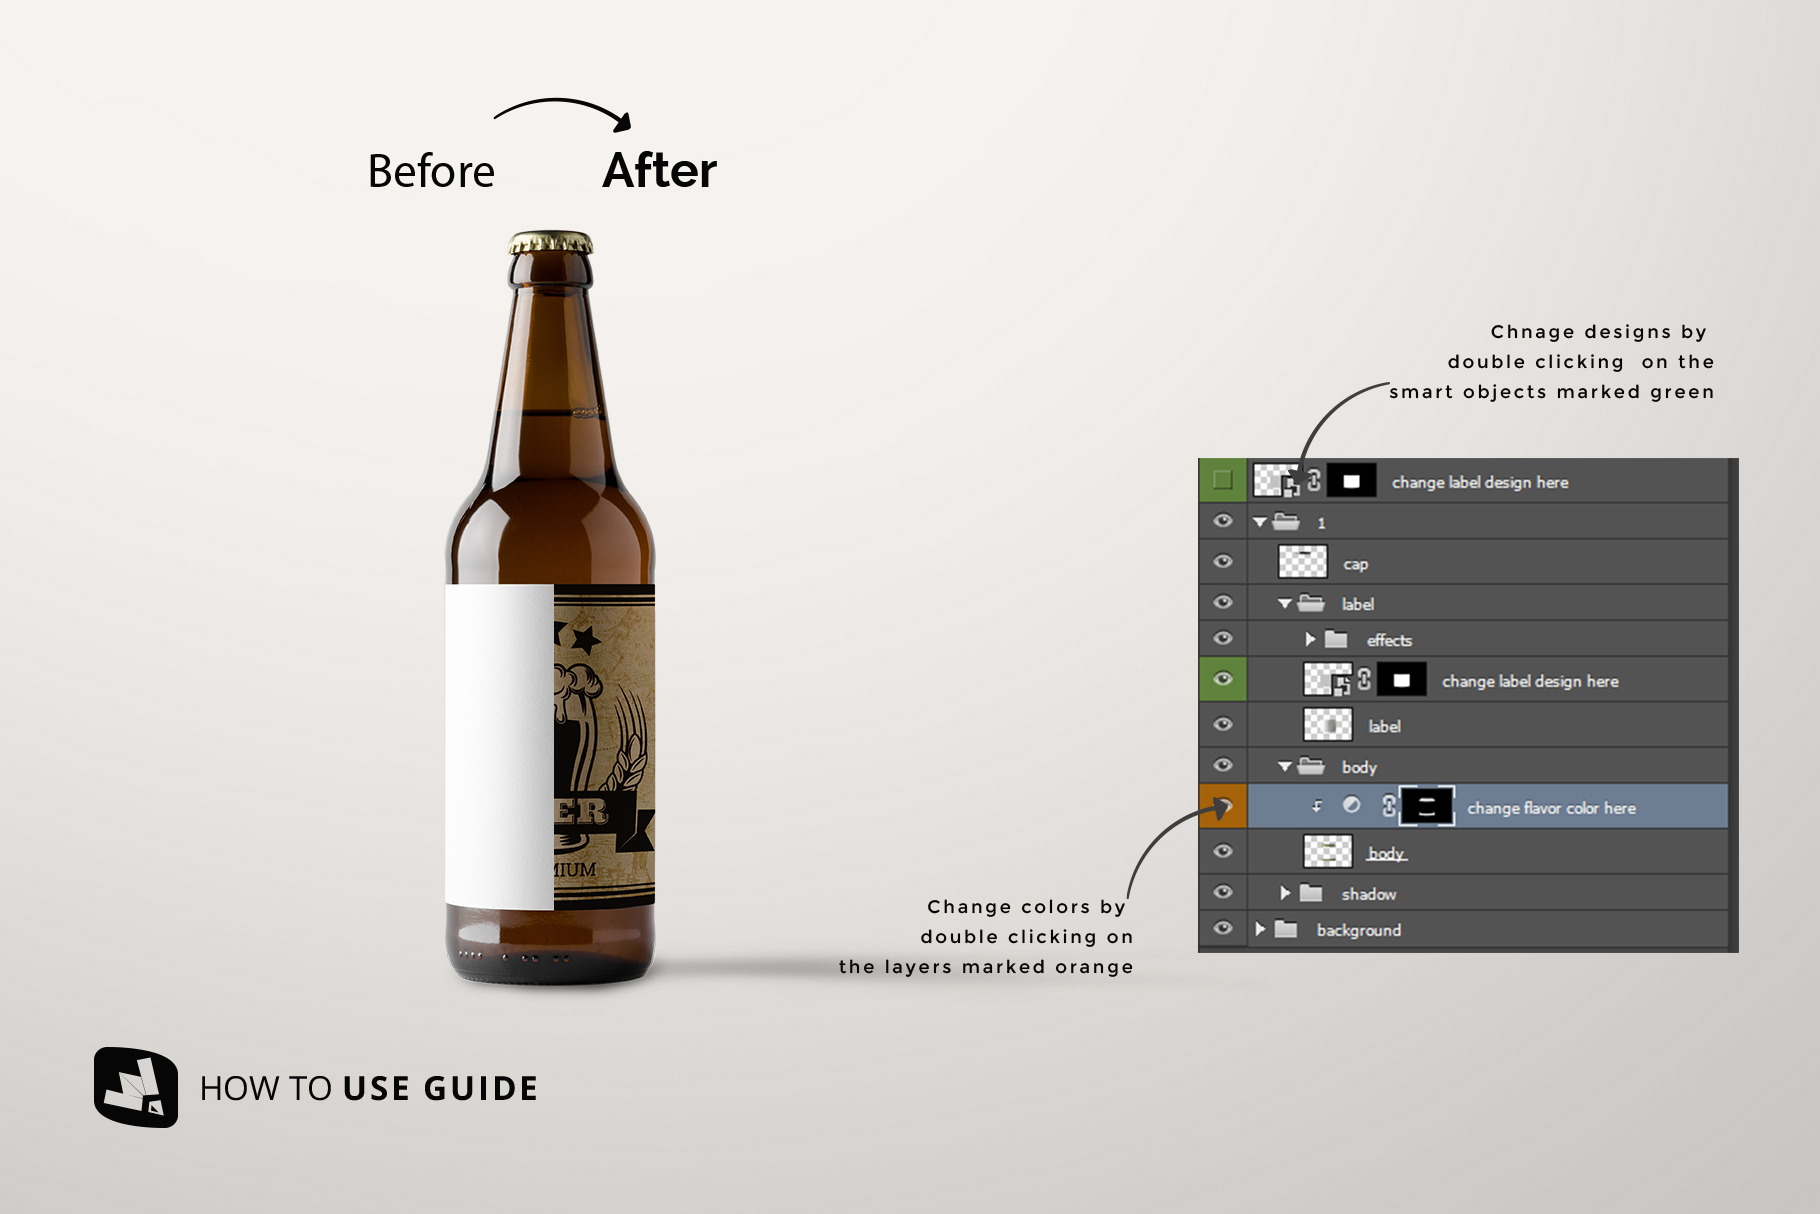 how to use guide of the craft beer bottle packaging mockup